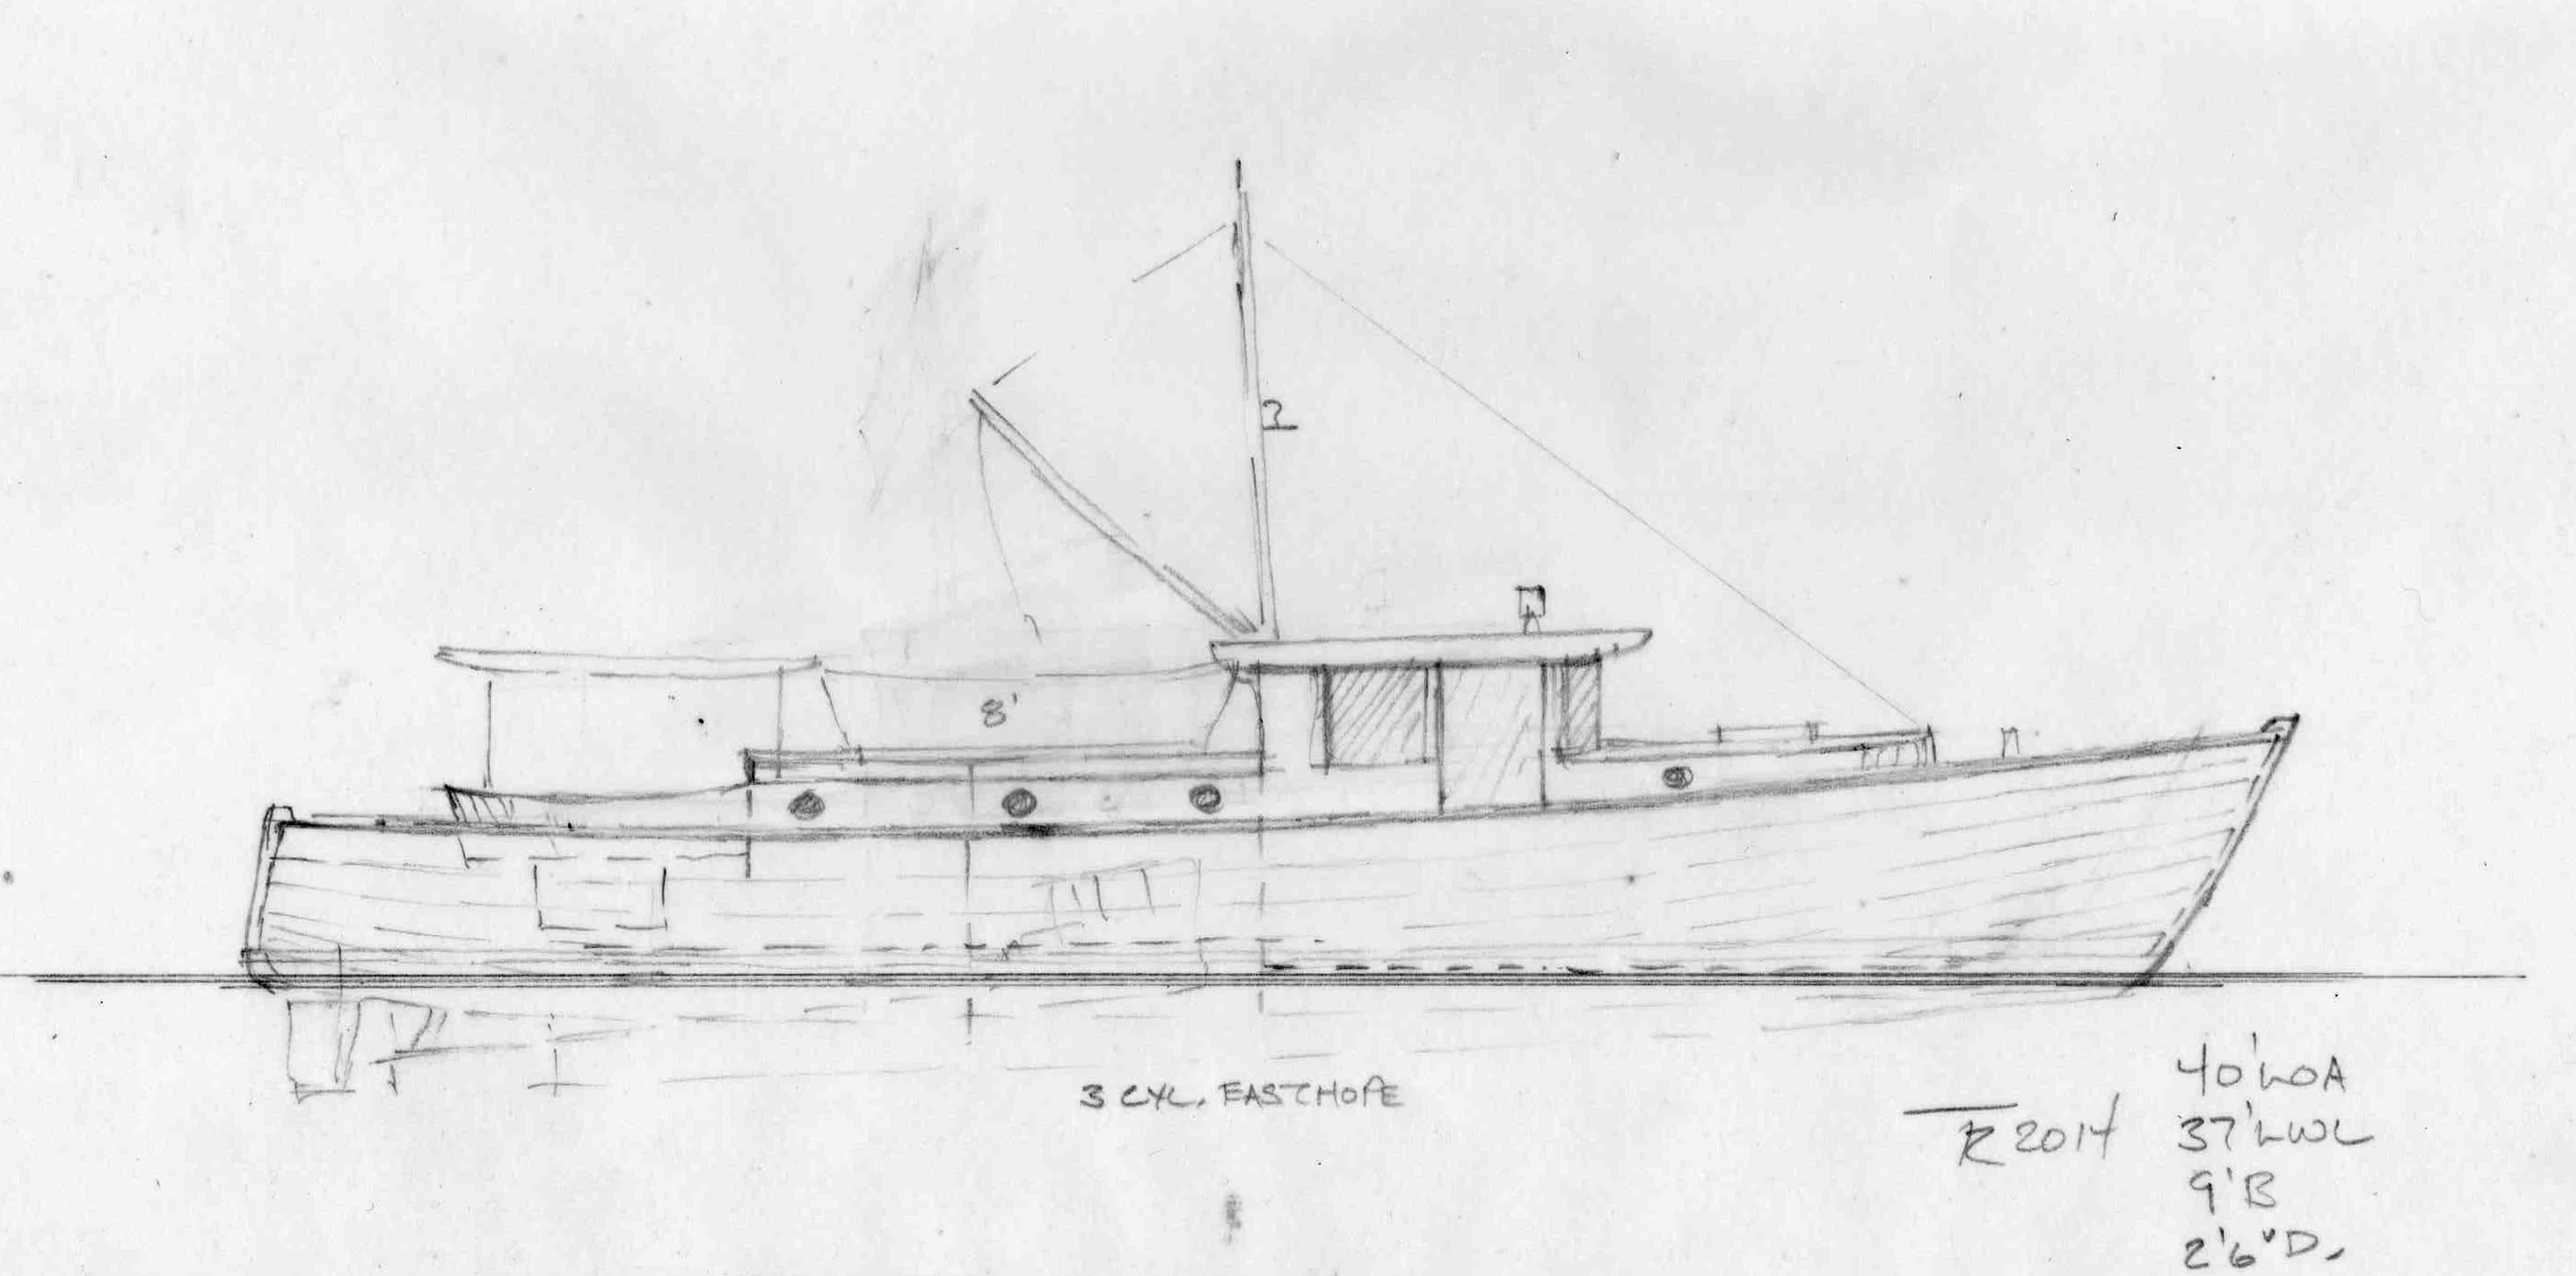 40' Cruiser for Easthope engine